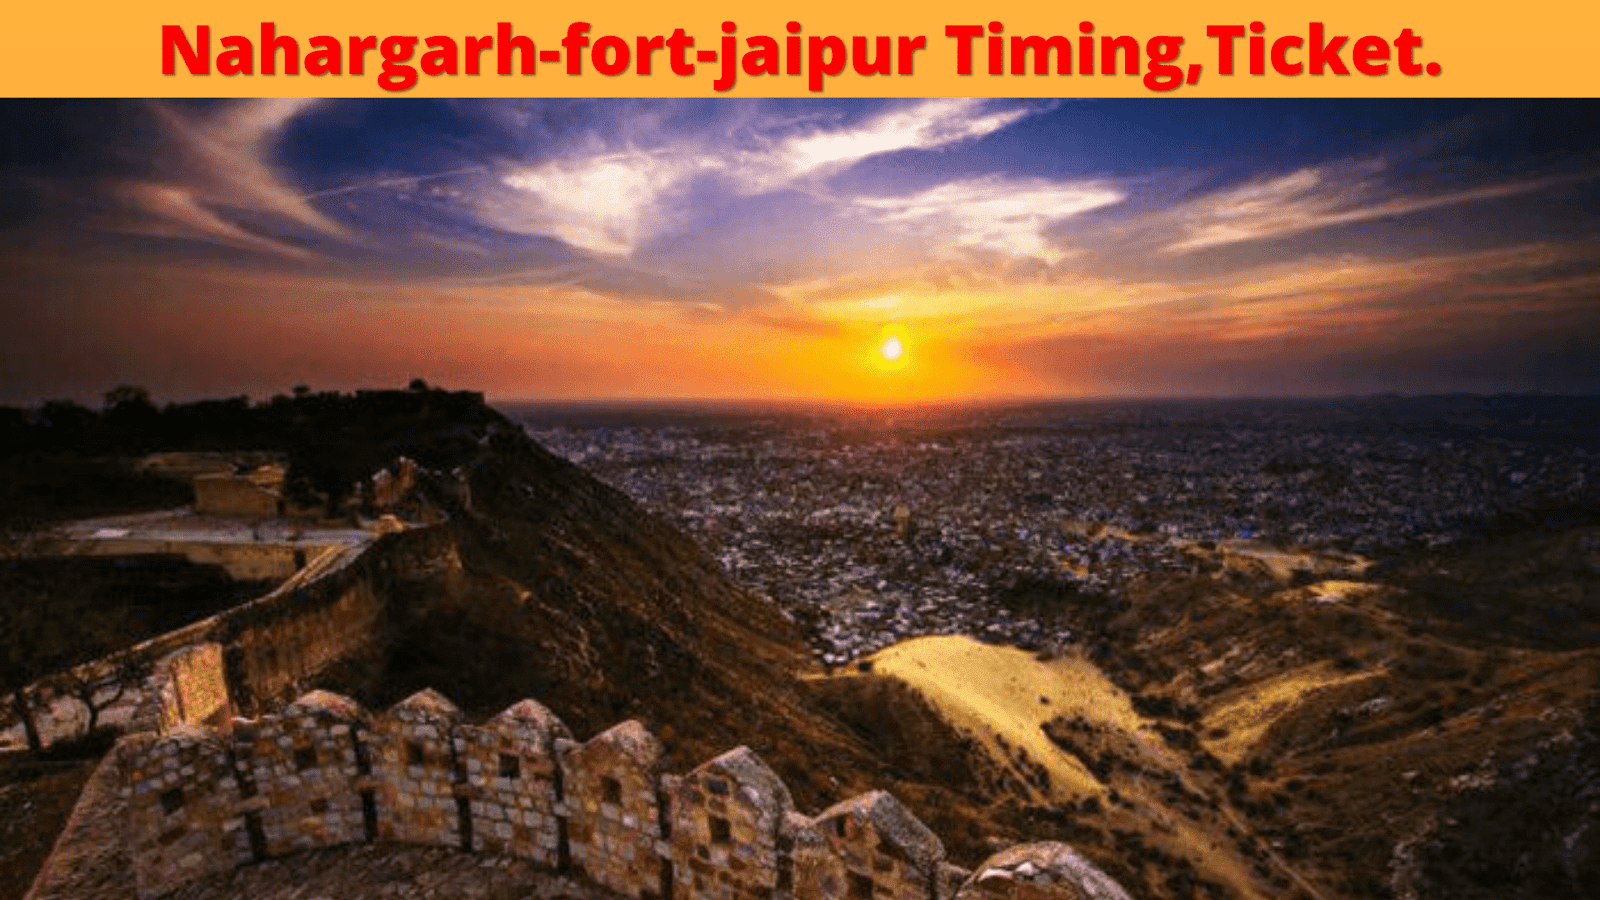 front image pf nahargarh-fort